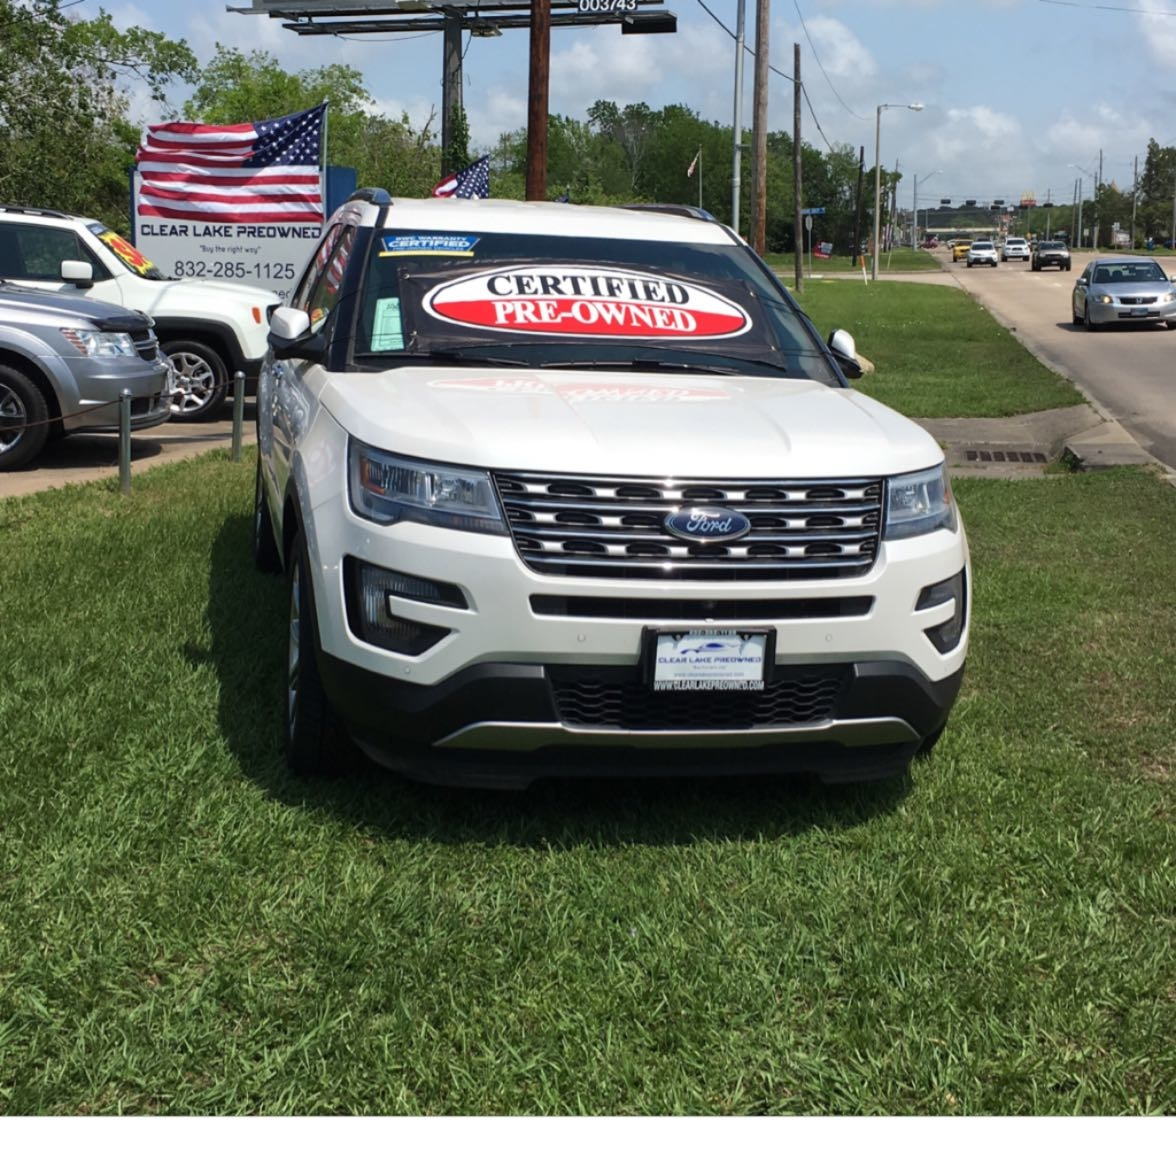 Clear Lake PreOwned image 3